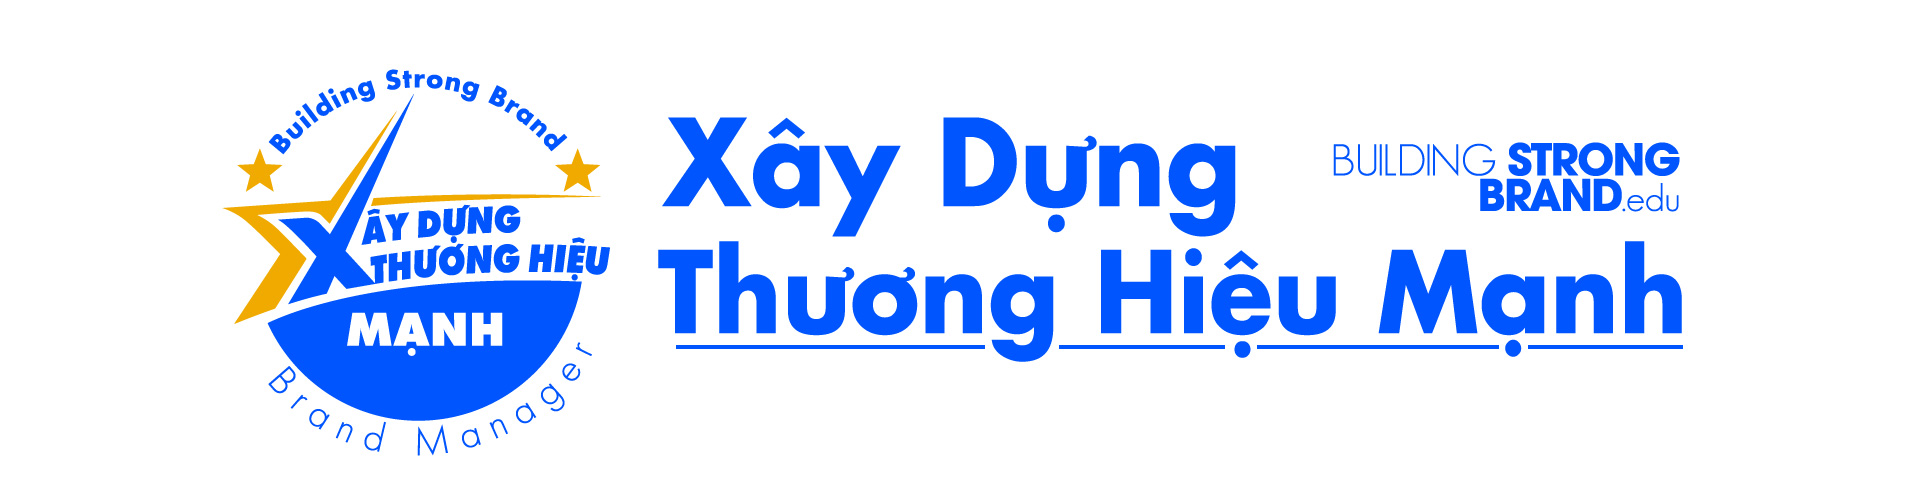 brand-manager_xay-dung-thm-1